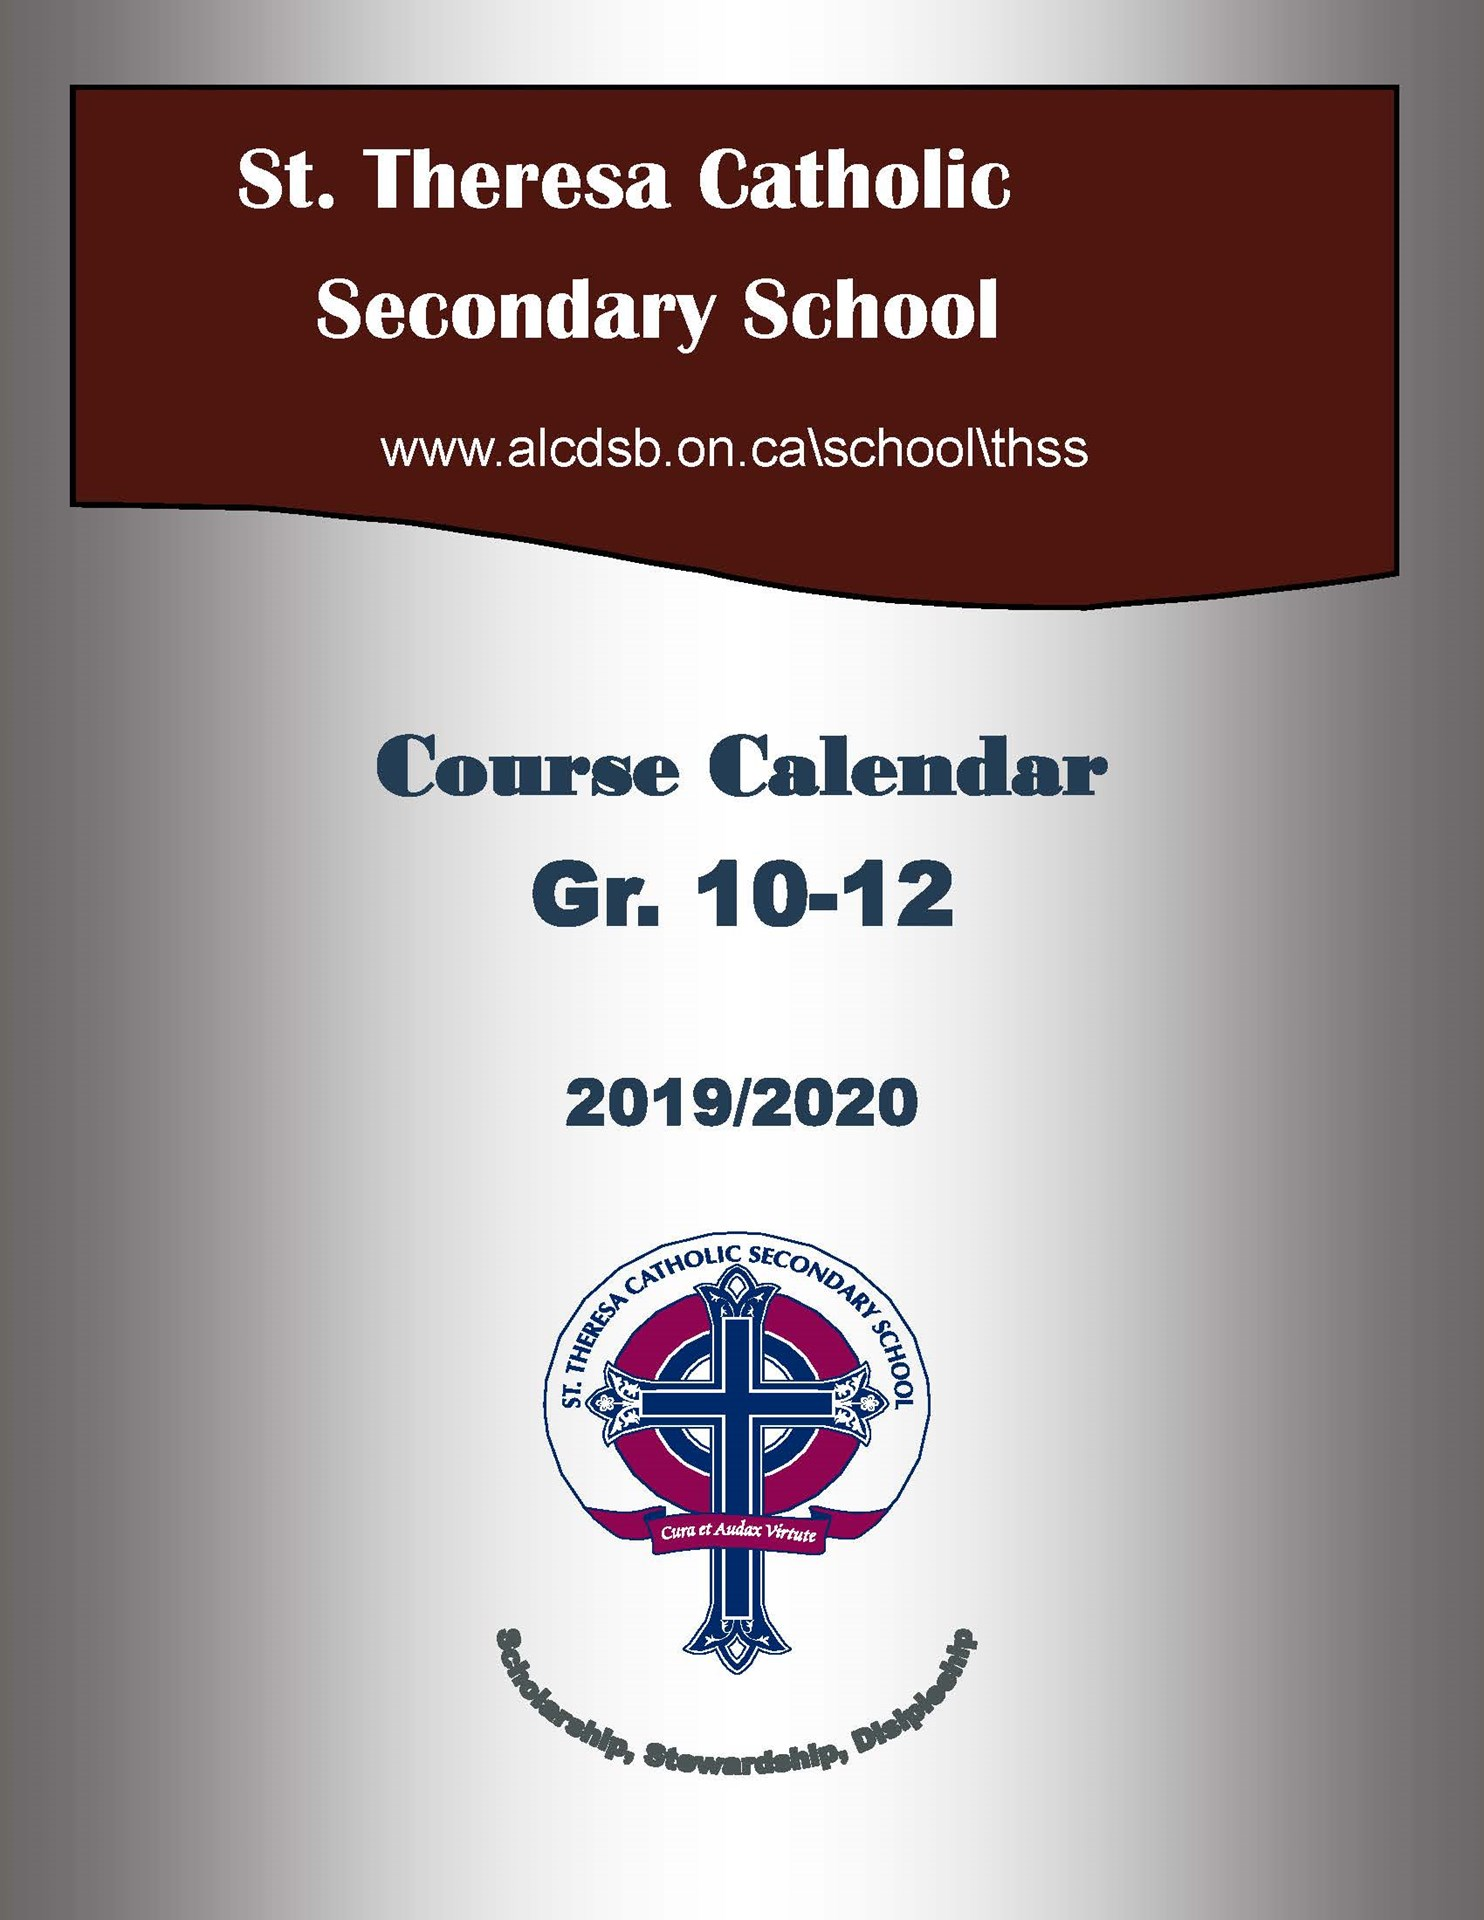 Cover Page 10-12 - course calendar.jpg